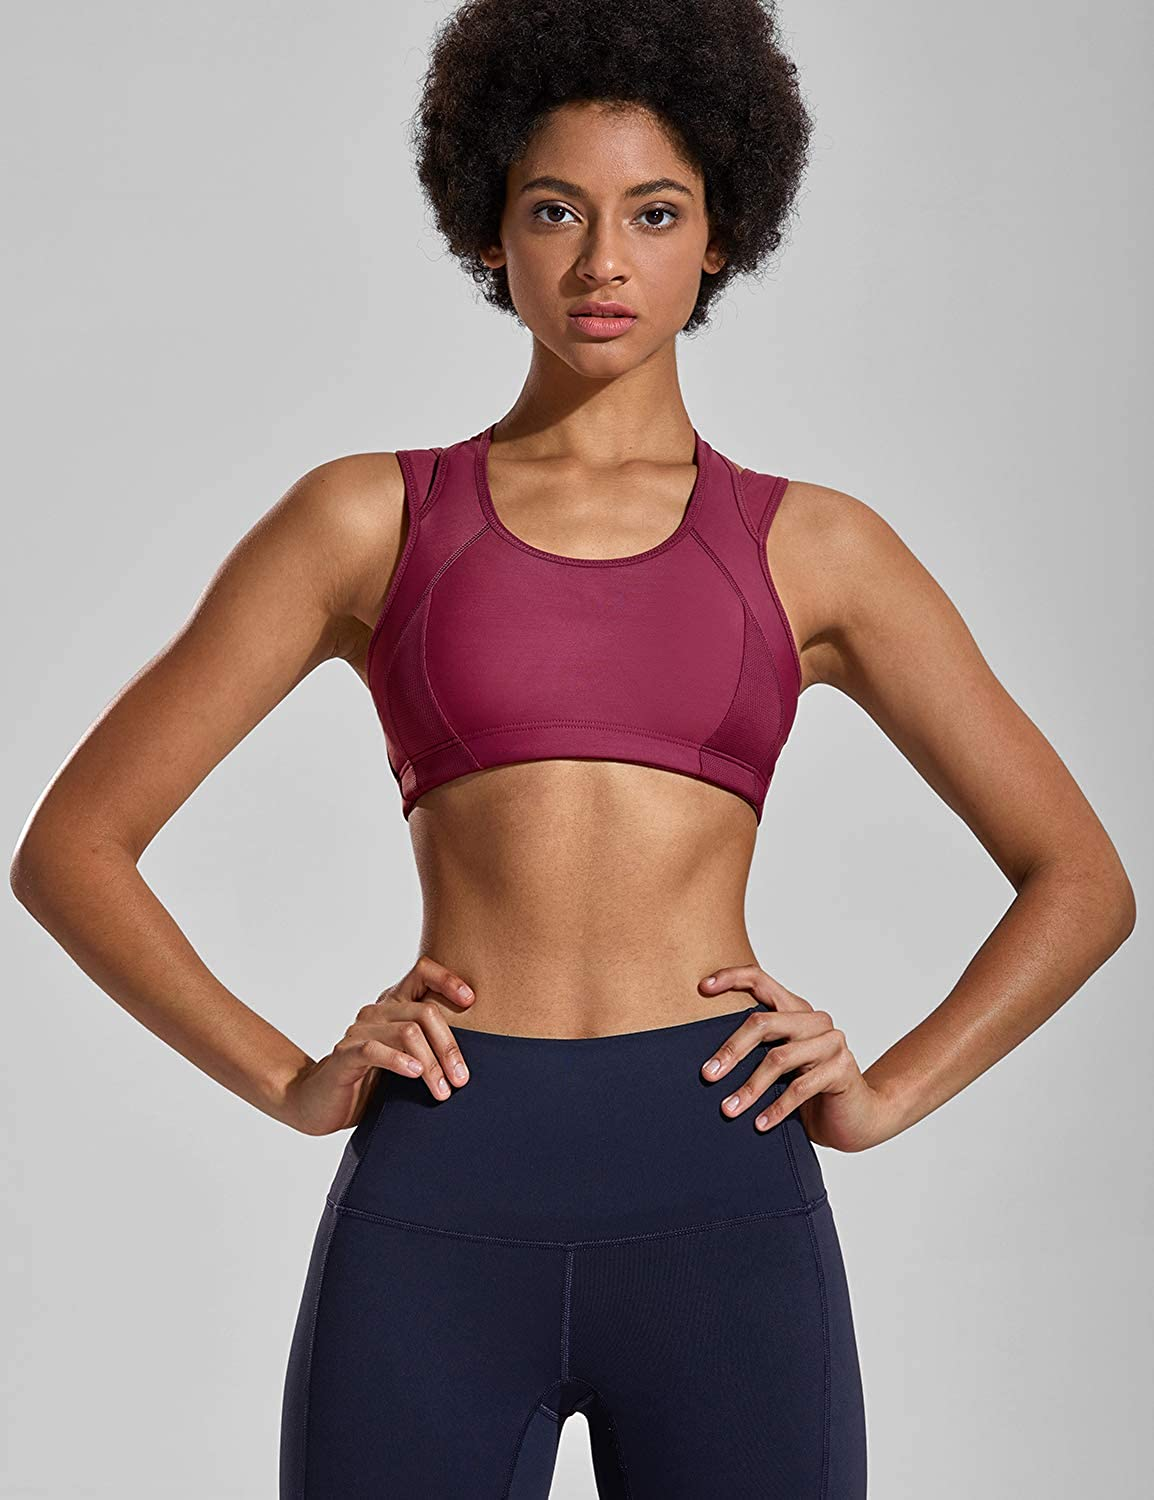 SYROKAN Womens Workout Sports Bra High Impact Support Bounce Control Wirefree Mesh Racerback Top